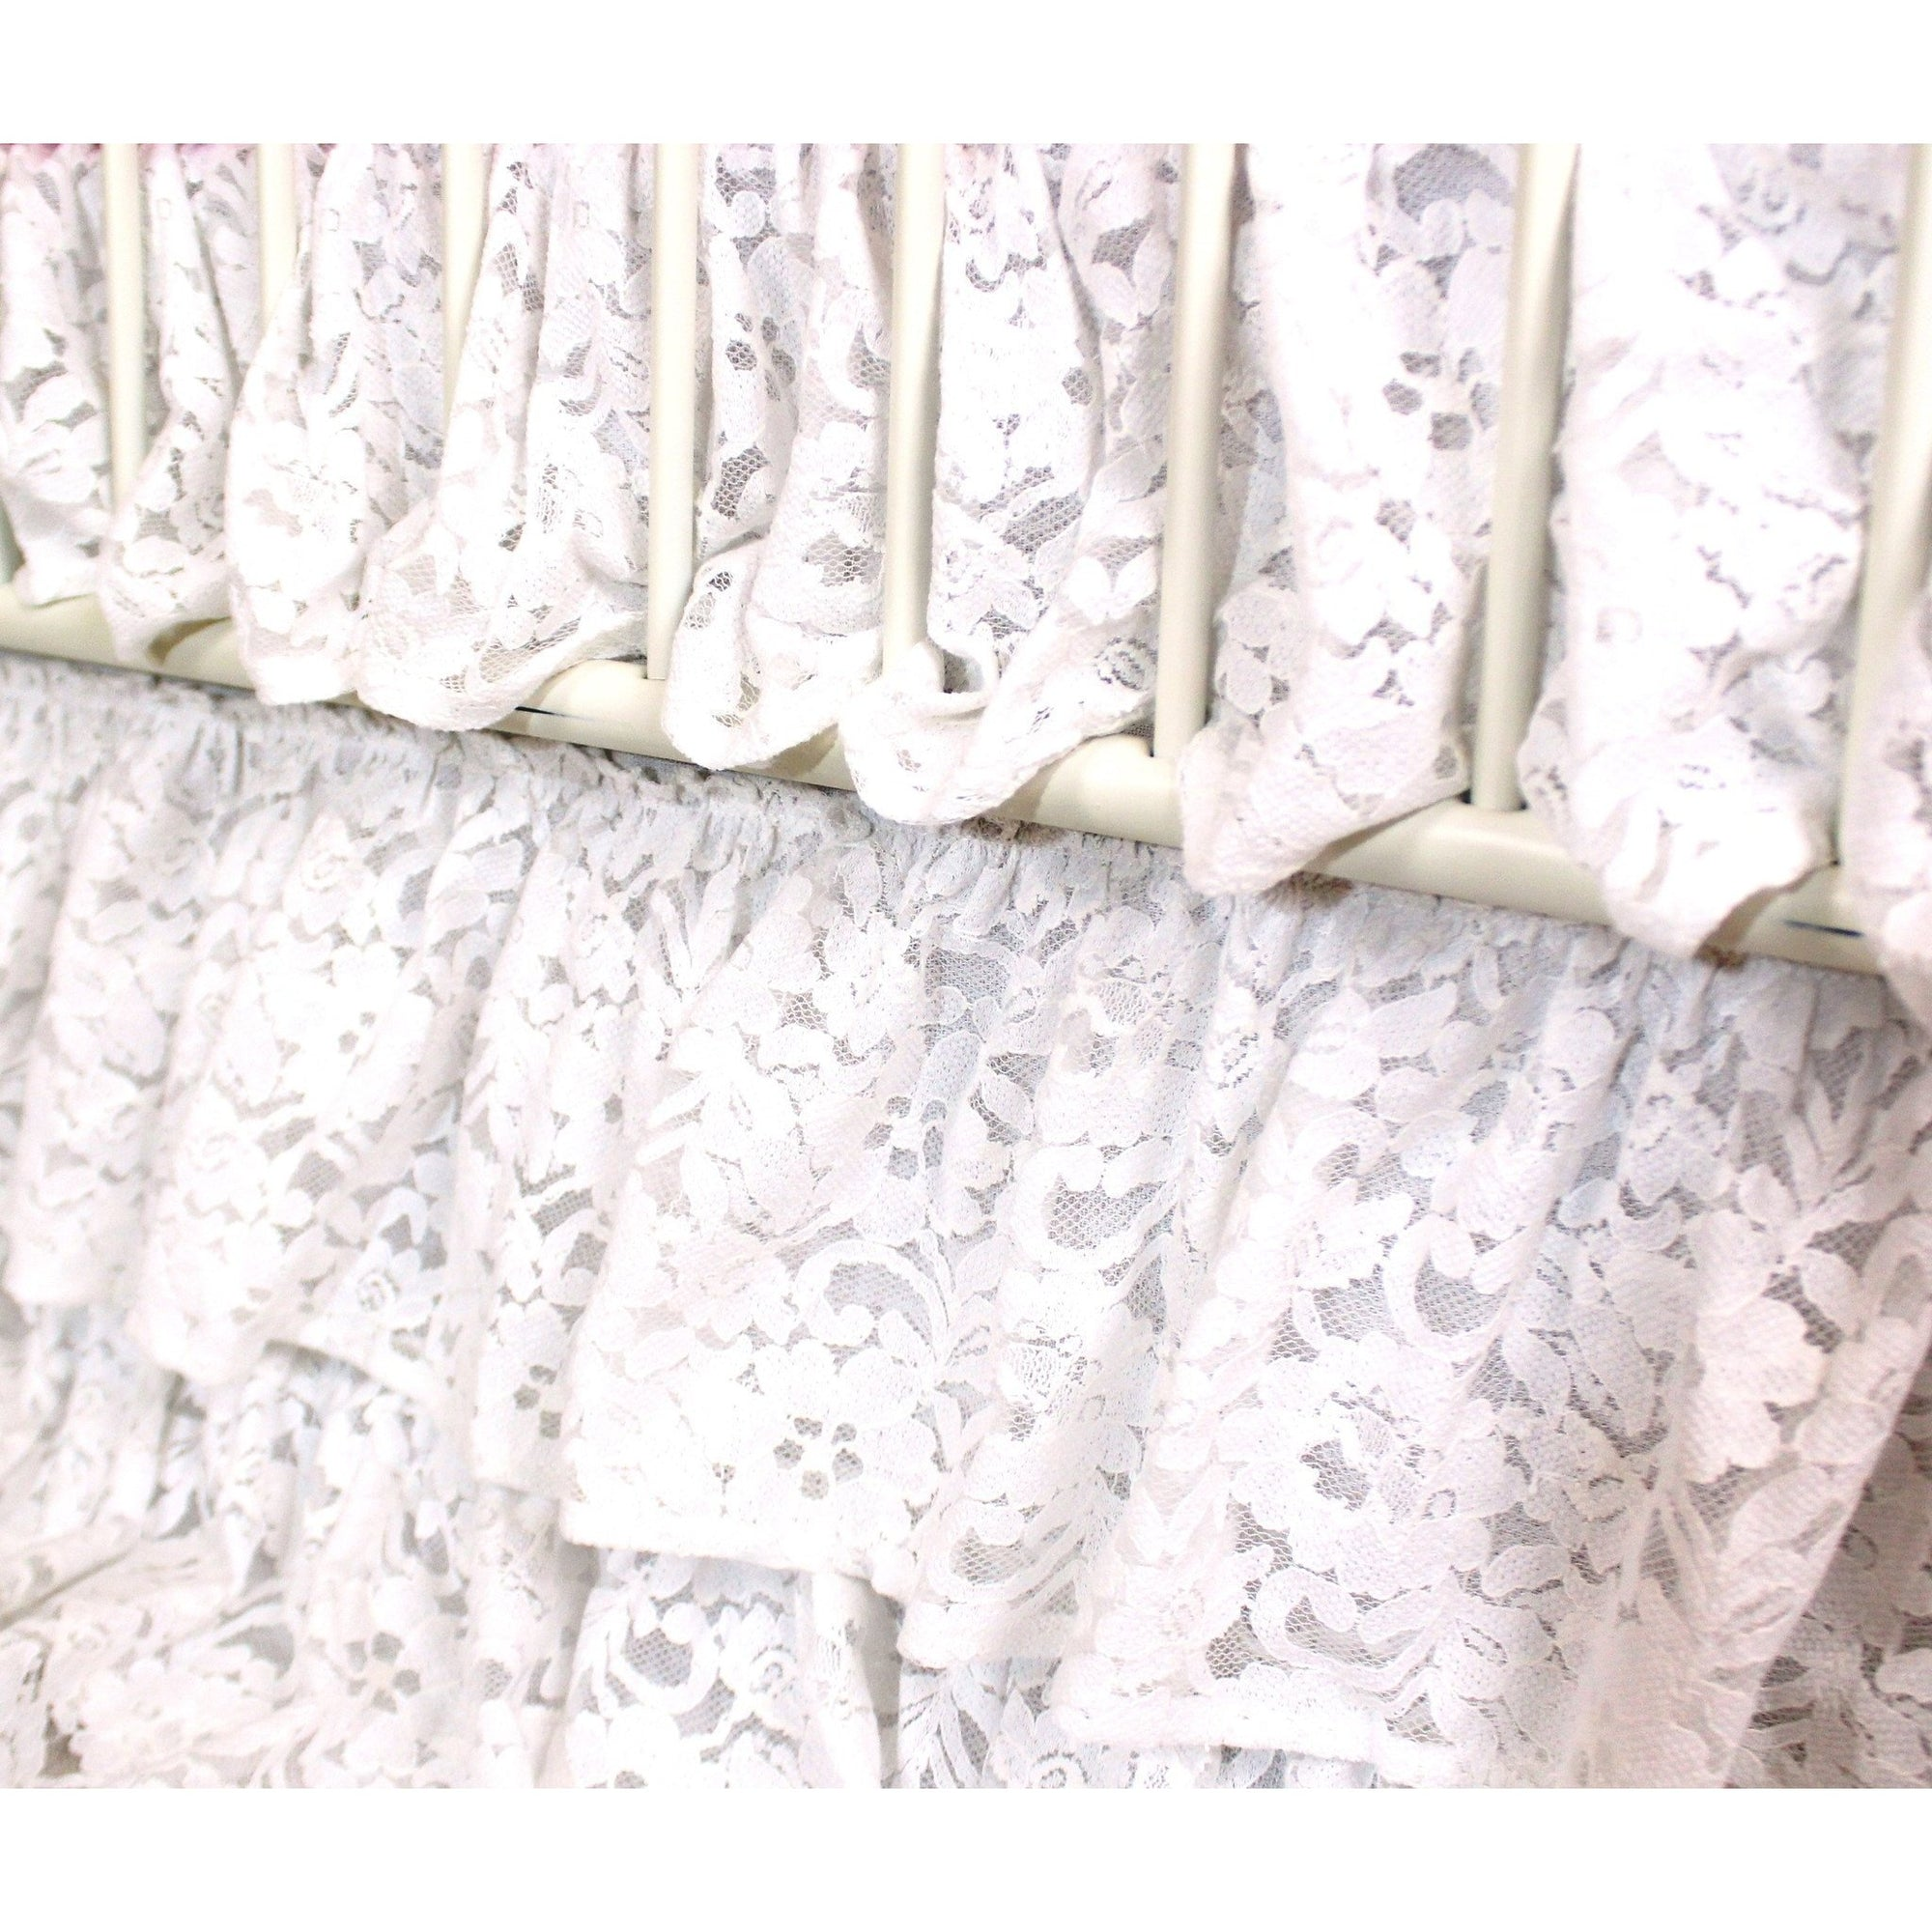 Waterfall Ruffle 3 Tier Crib Skirt | Vintage Lace White-Crib Skirt-Default-Jack and Jill Boutique